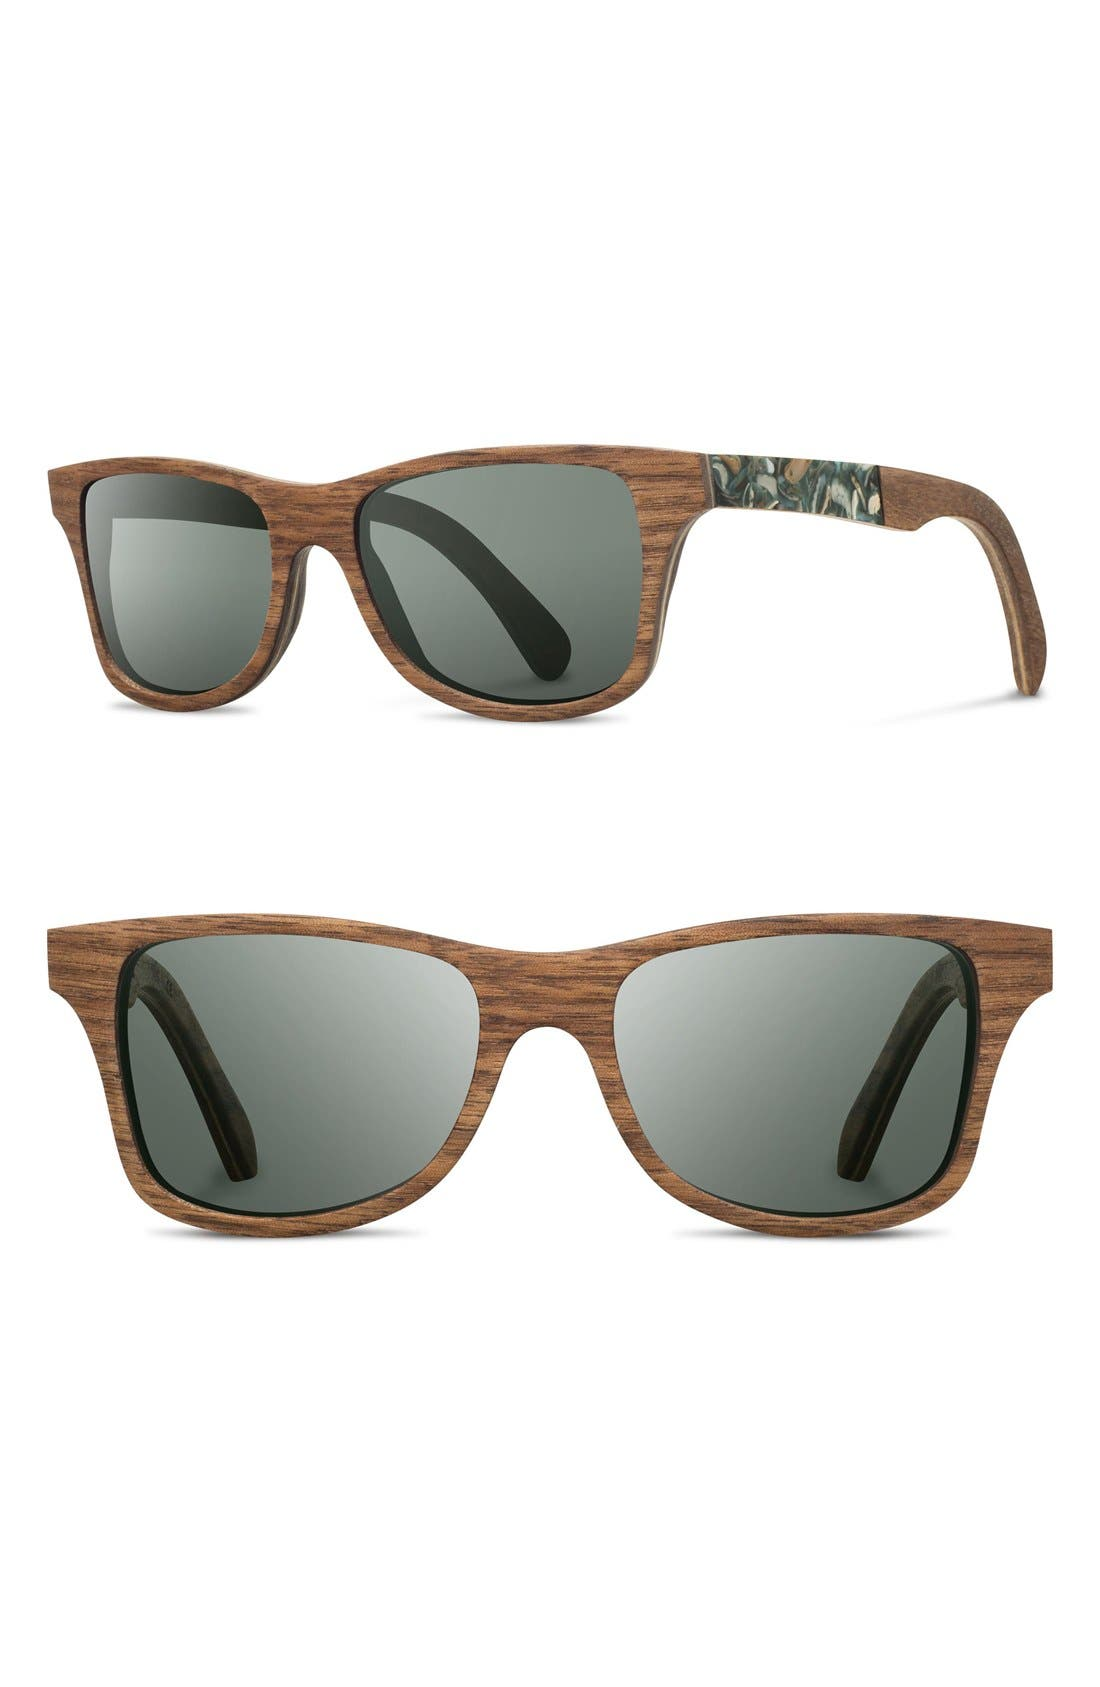 SHWOOD 'Canby' 55mm Polarized Wood & Seashell Inlay